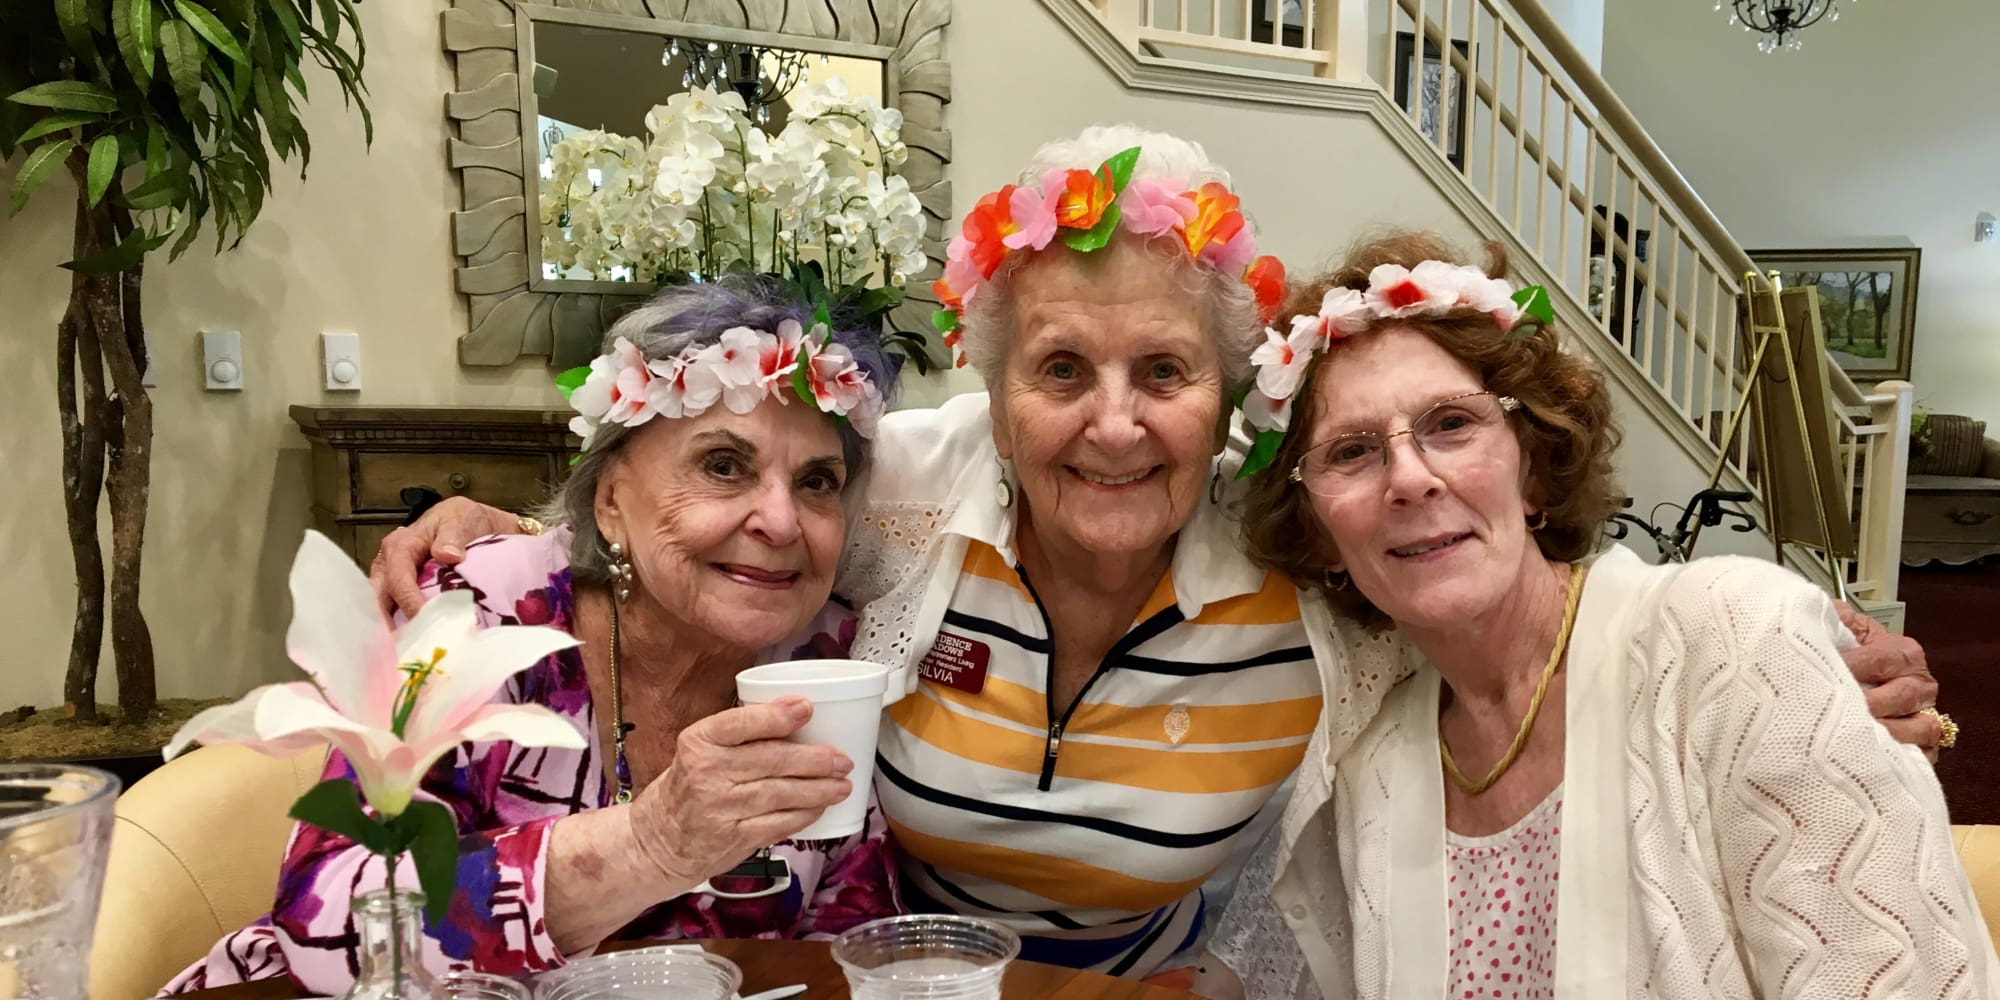 Residents wearing leis at Providence Meadows Gracious Retirement Living in Charlotte, North Carolina